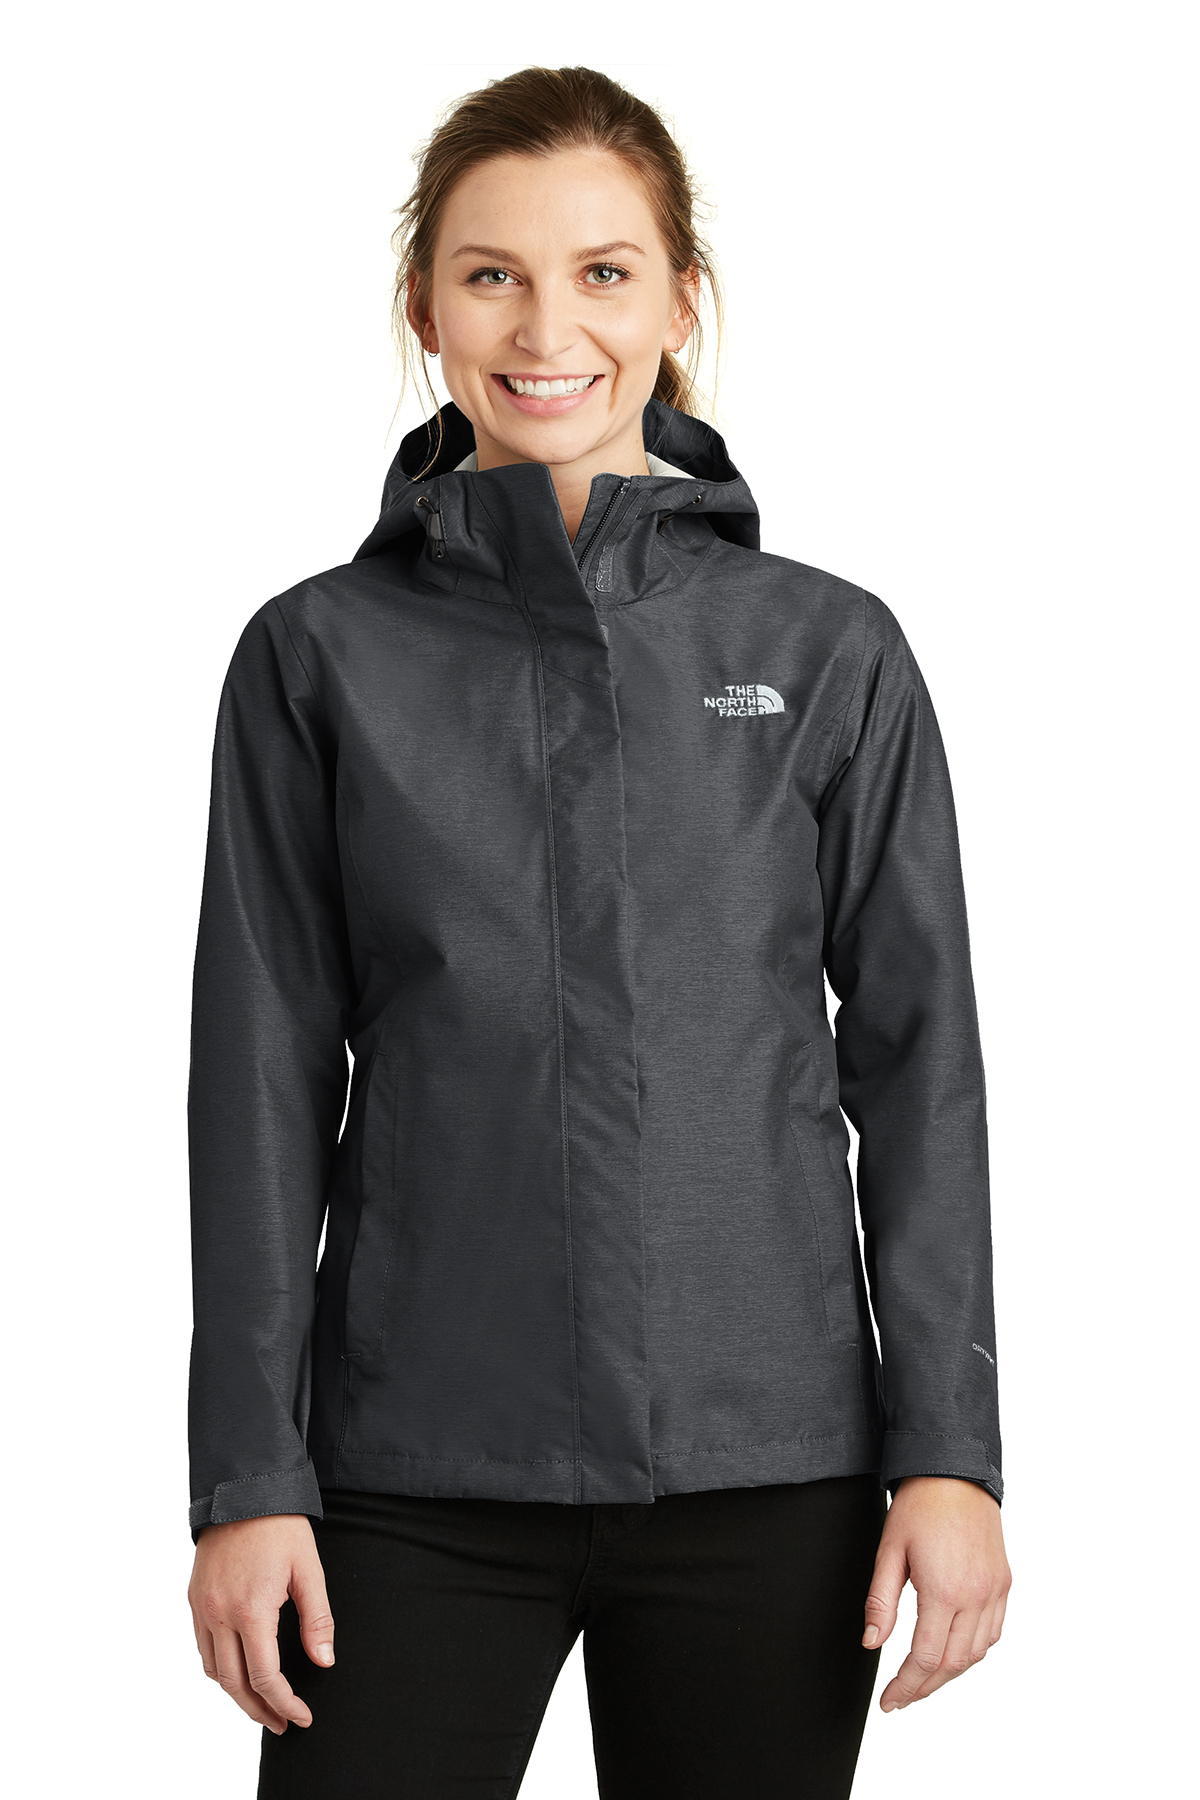 The North Face® NF0A3LH5 - Ladies DryVent Rain Jacket